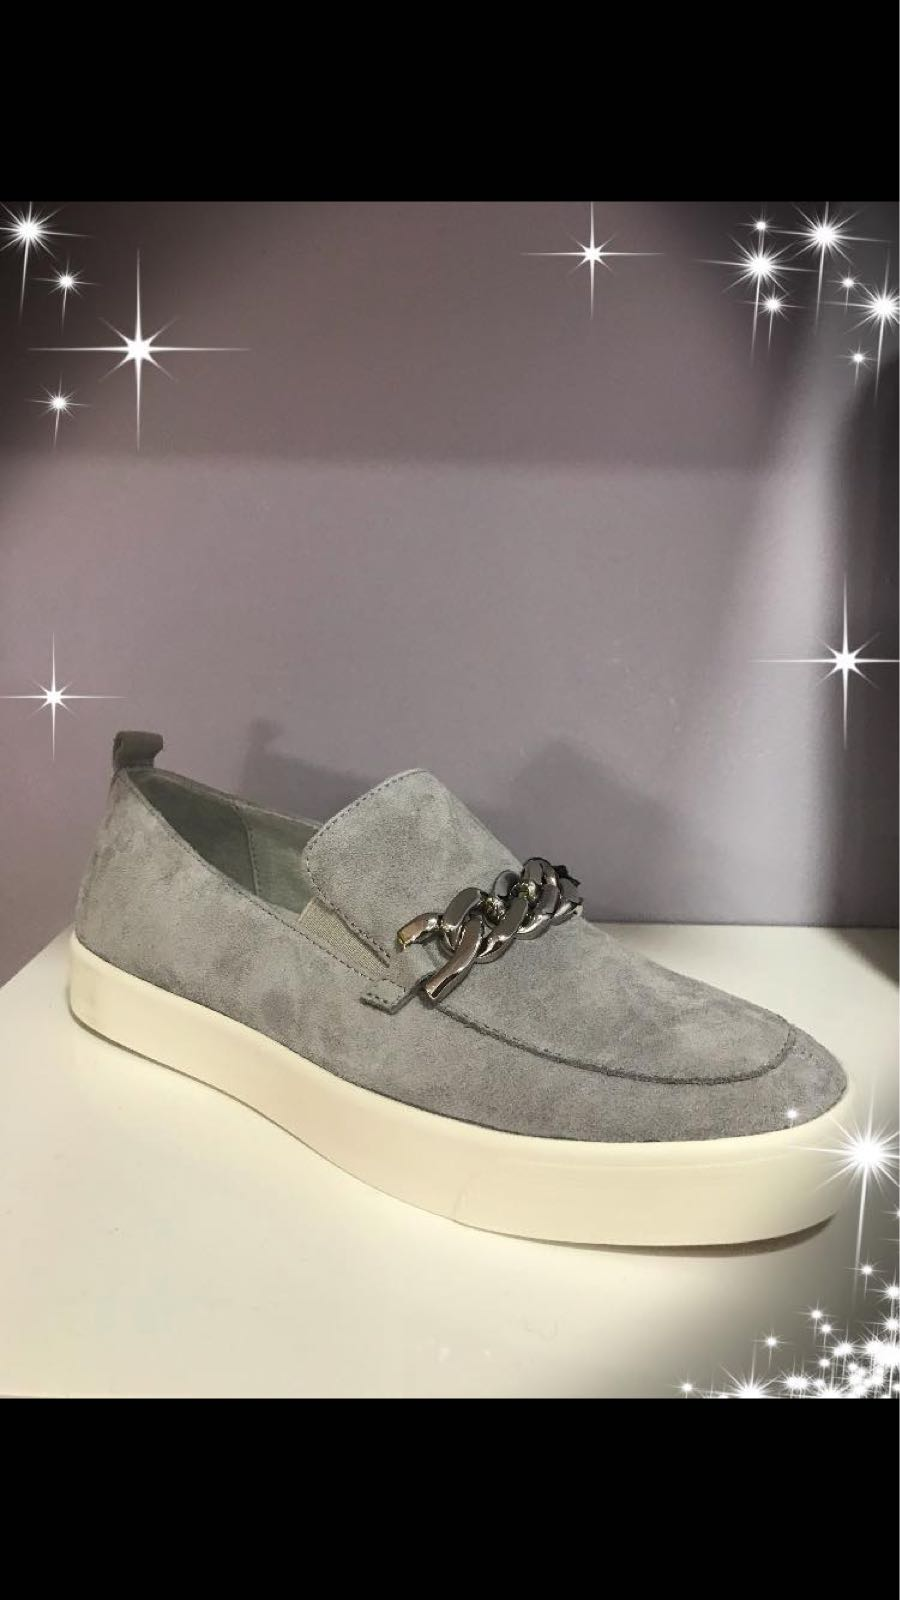 Caprice Grey Suede Pump with Silver Chain detail